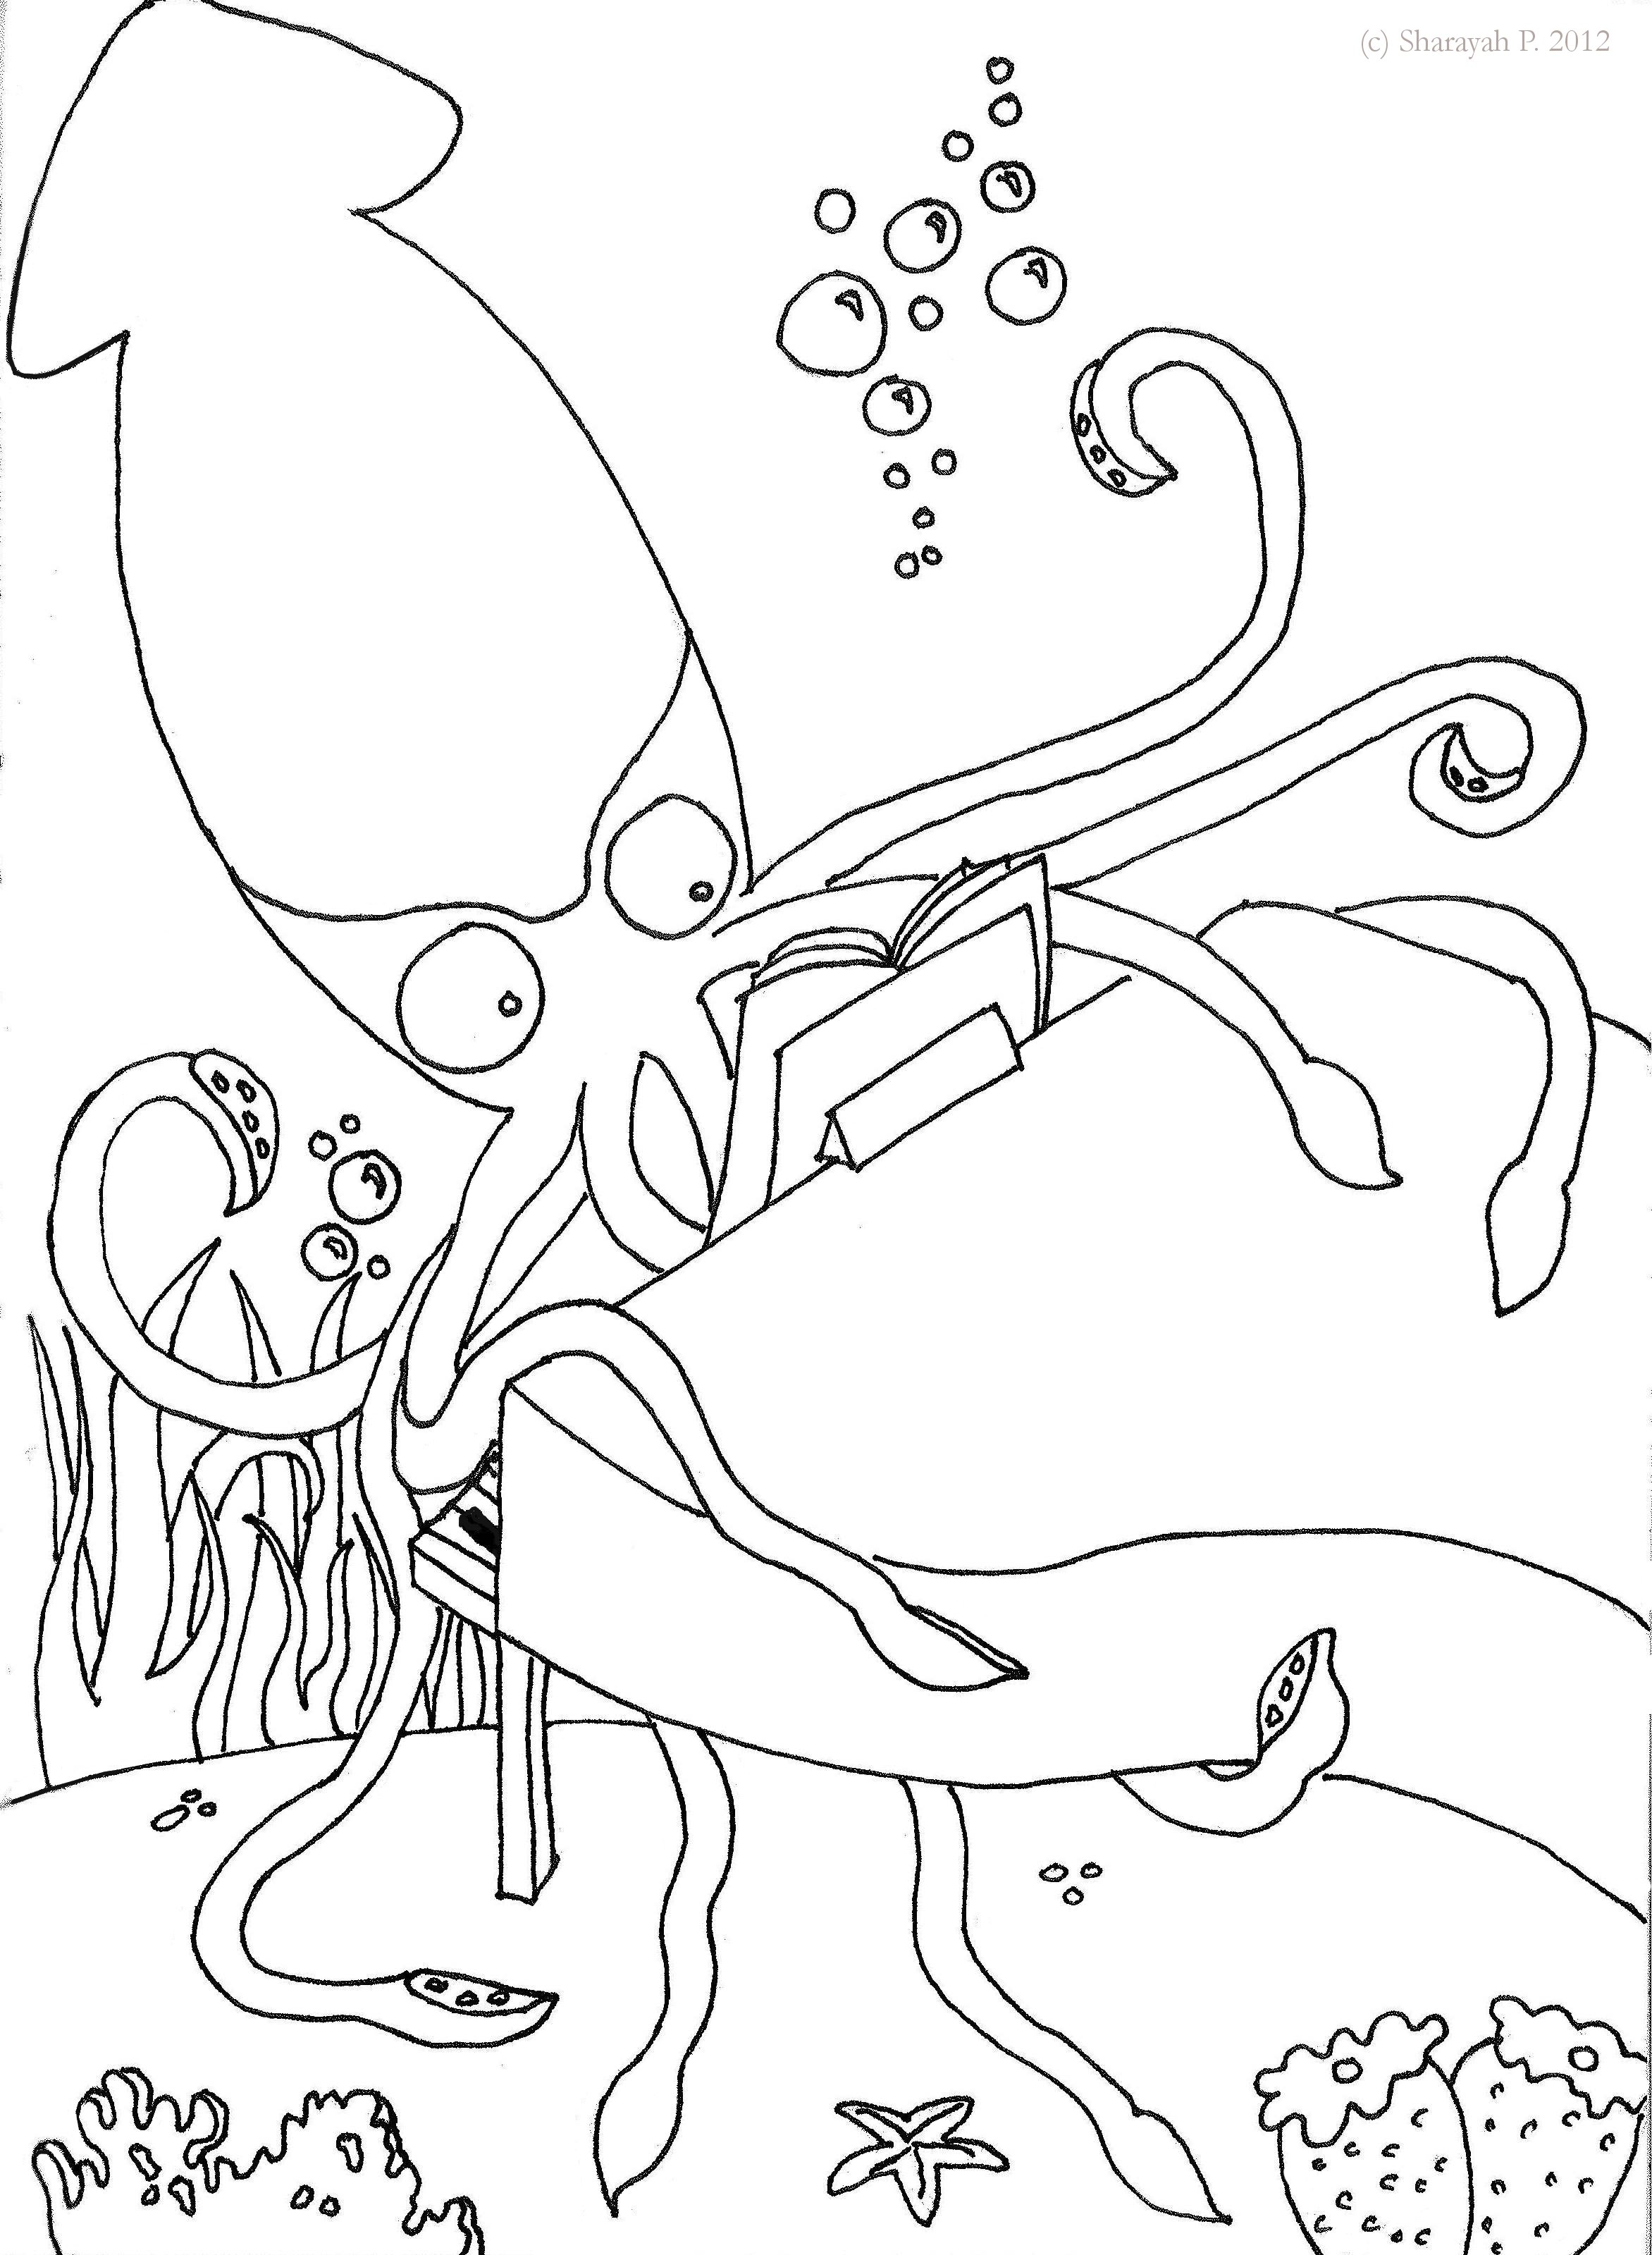 squid coloring page - giant squid coloring coloring pages